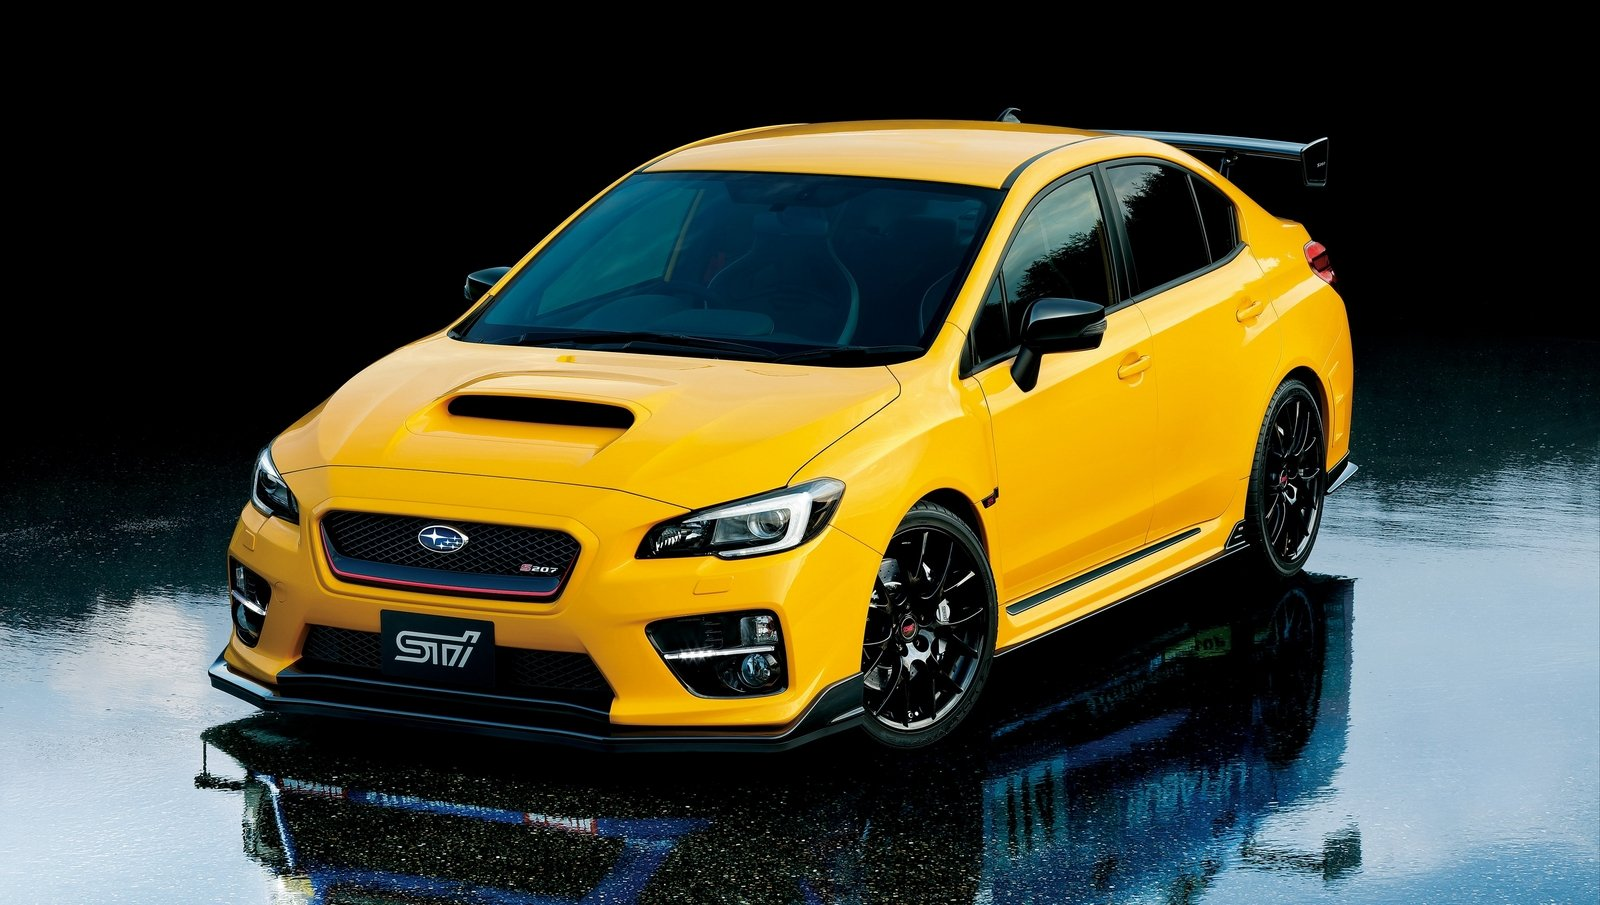 2016 subaru wrx sti s207 limited edition review top speed. Black Bedroom Furniture Sets. Home Design Ideas